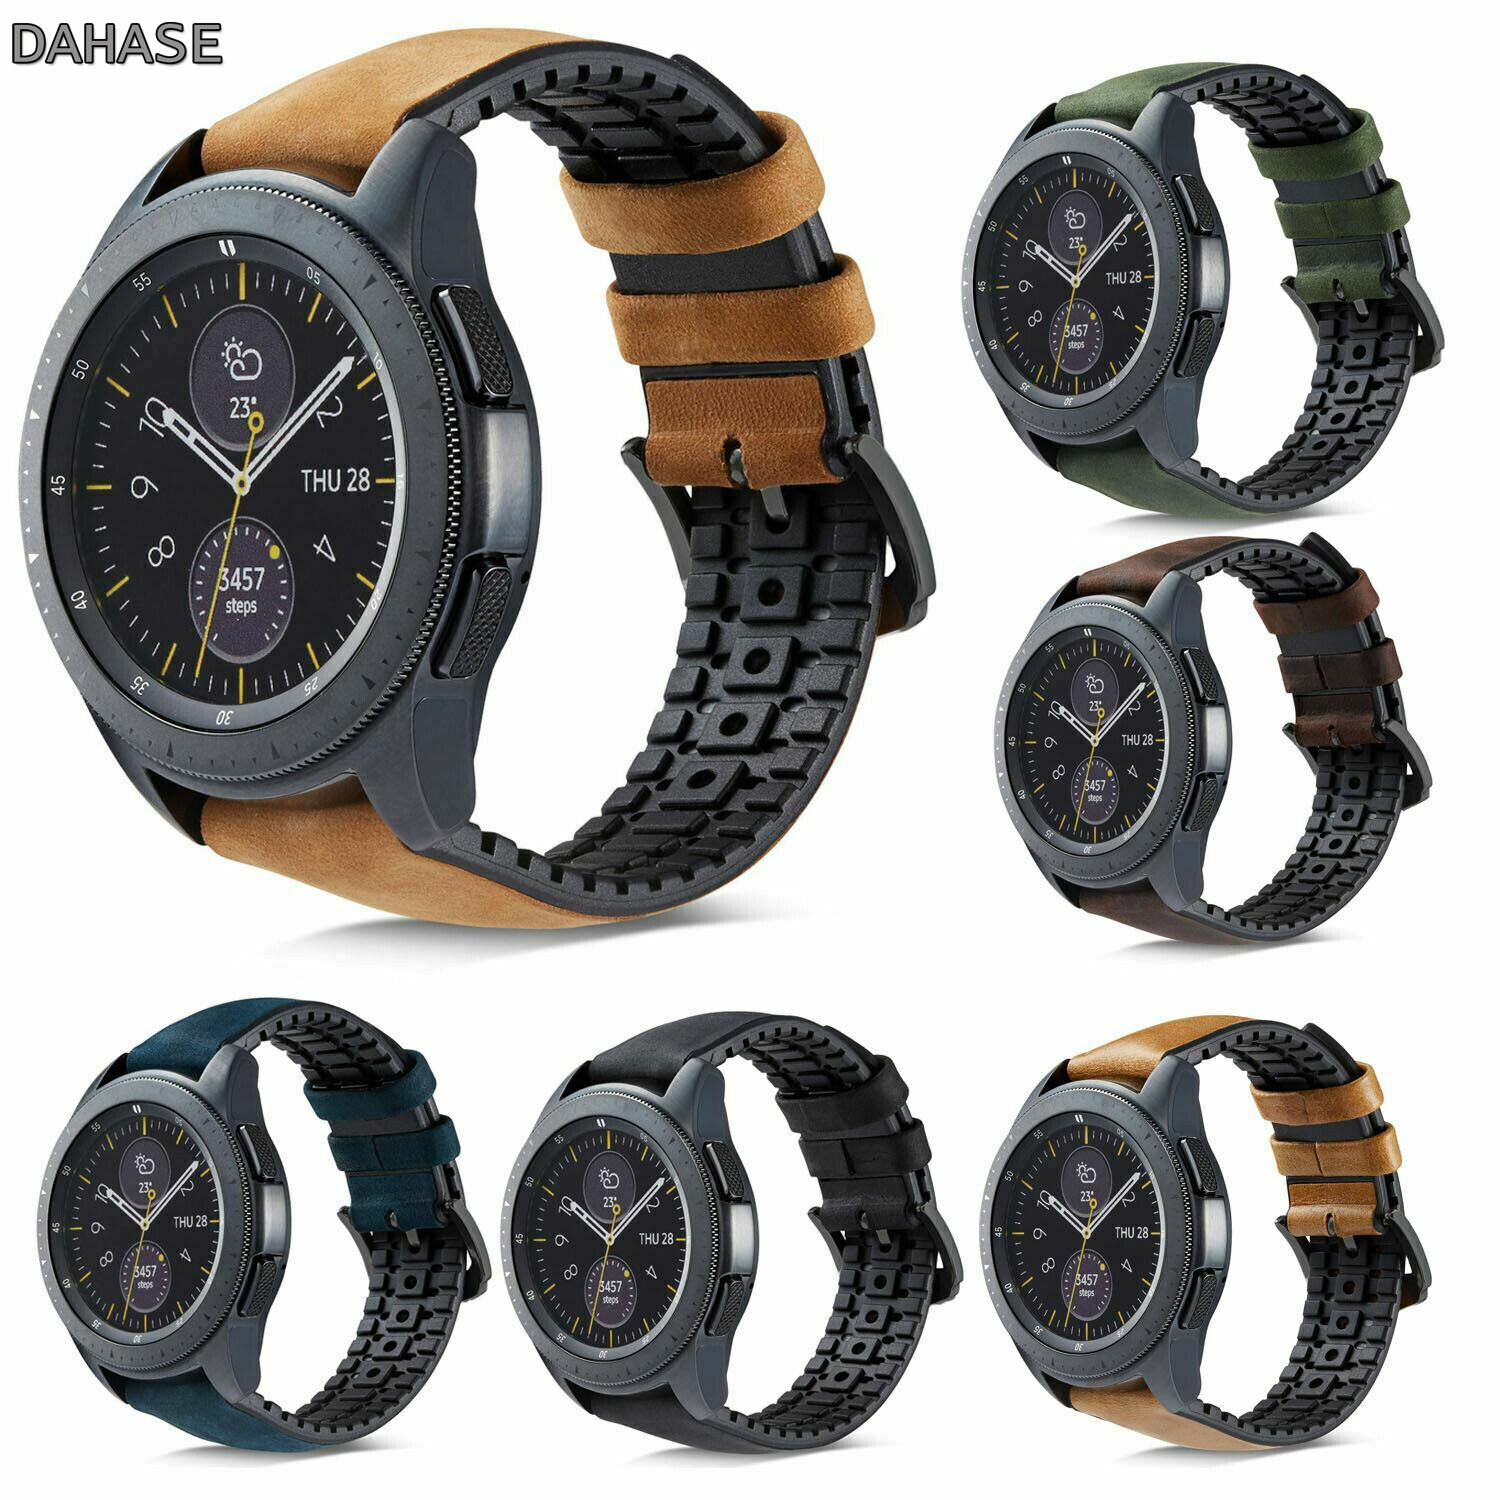 Silicone Genuine Leather Watchband 20mm 22mm for Samsung Galaxy Watch 42mm 46mm R810/R800 Quick Release Band Strap BraceletSilicone Genuine Leather Watchband 20mm 22mm for Samsung Galaxy Watch 42mm 46mm R810/R800 Quick Release Band Strap Bracelet